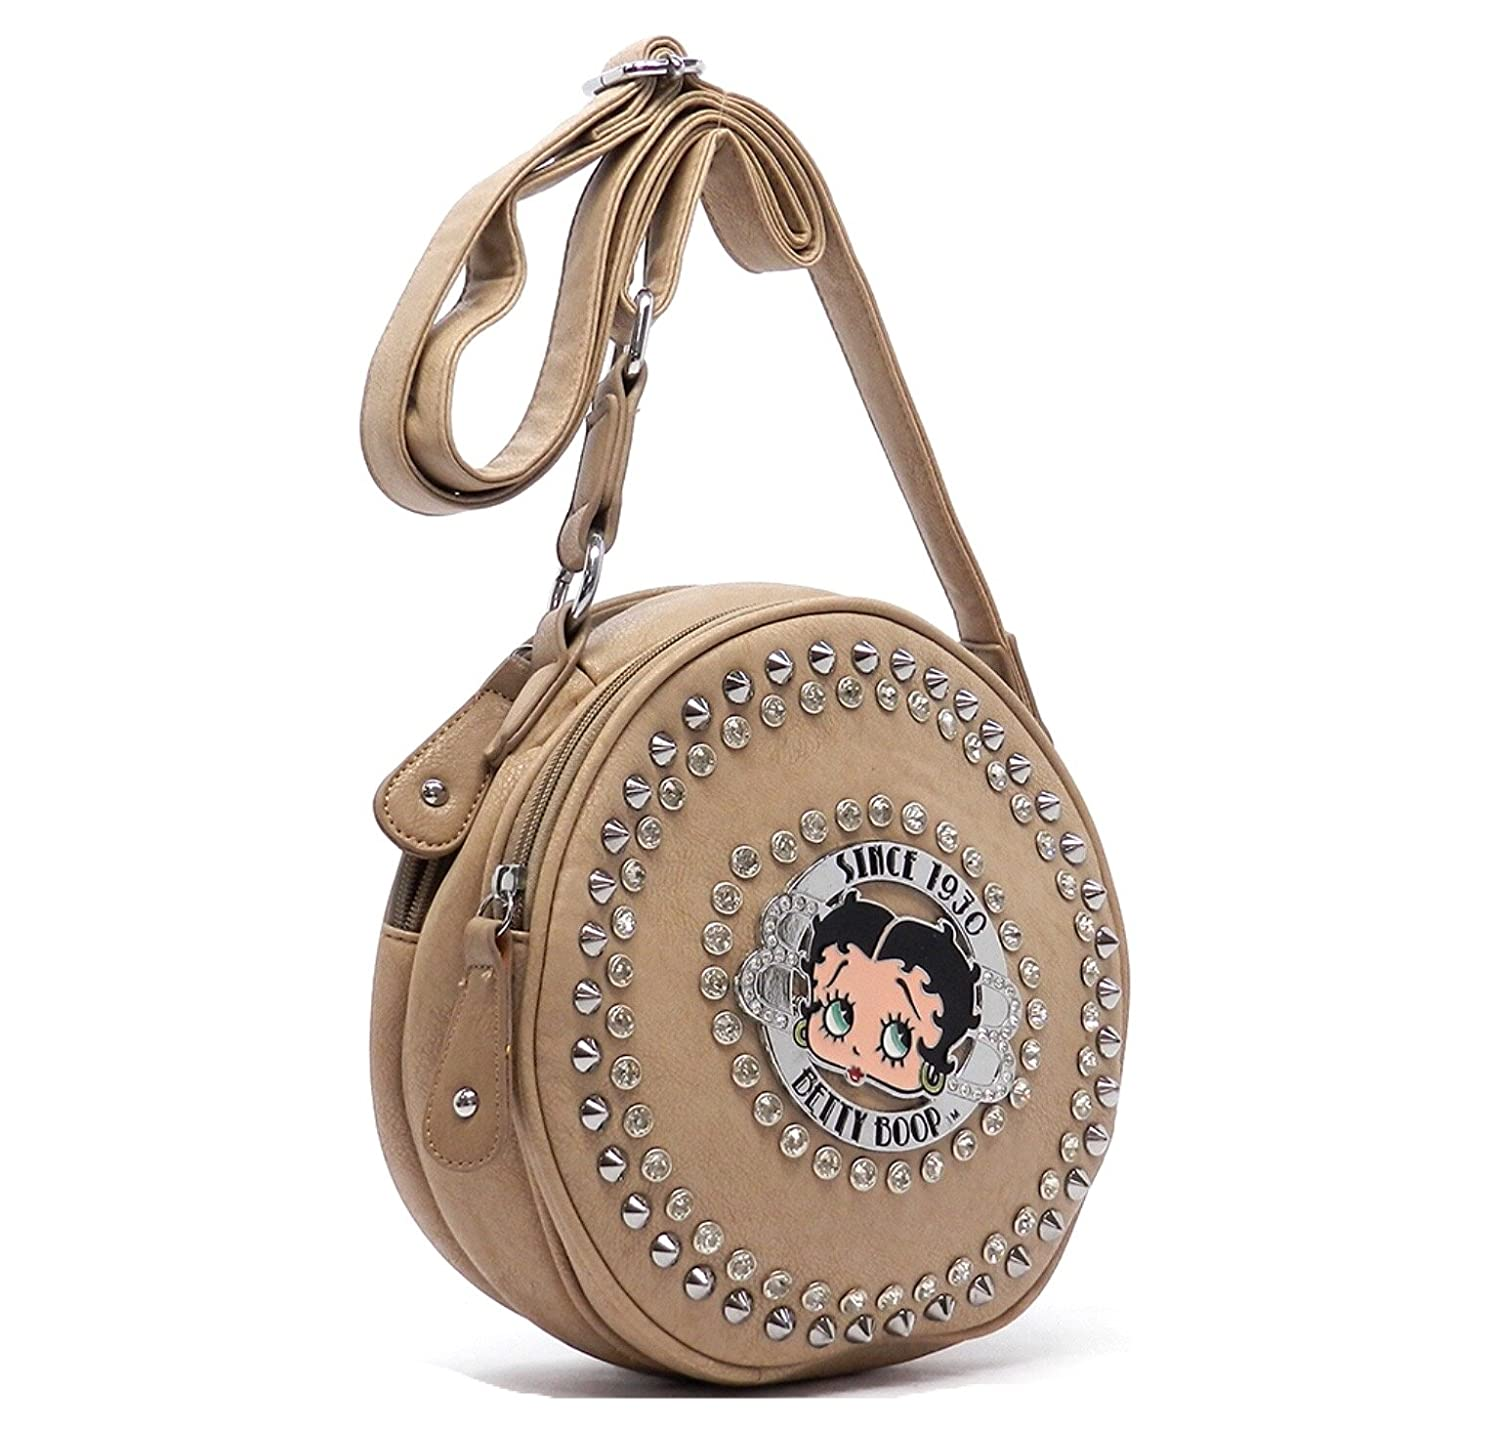 Oyster Beige Betty Boop Messenger Bag with Pom Keychain Holder